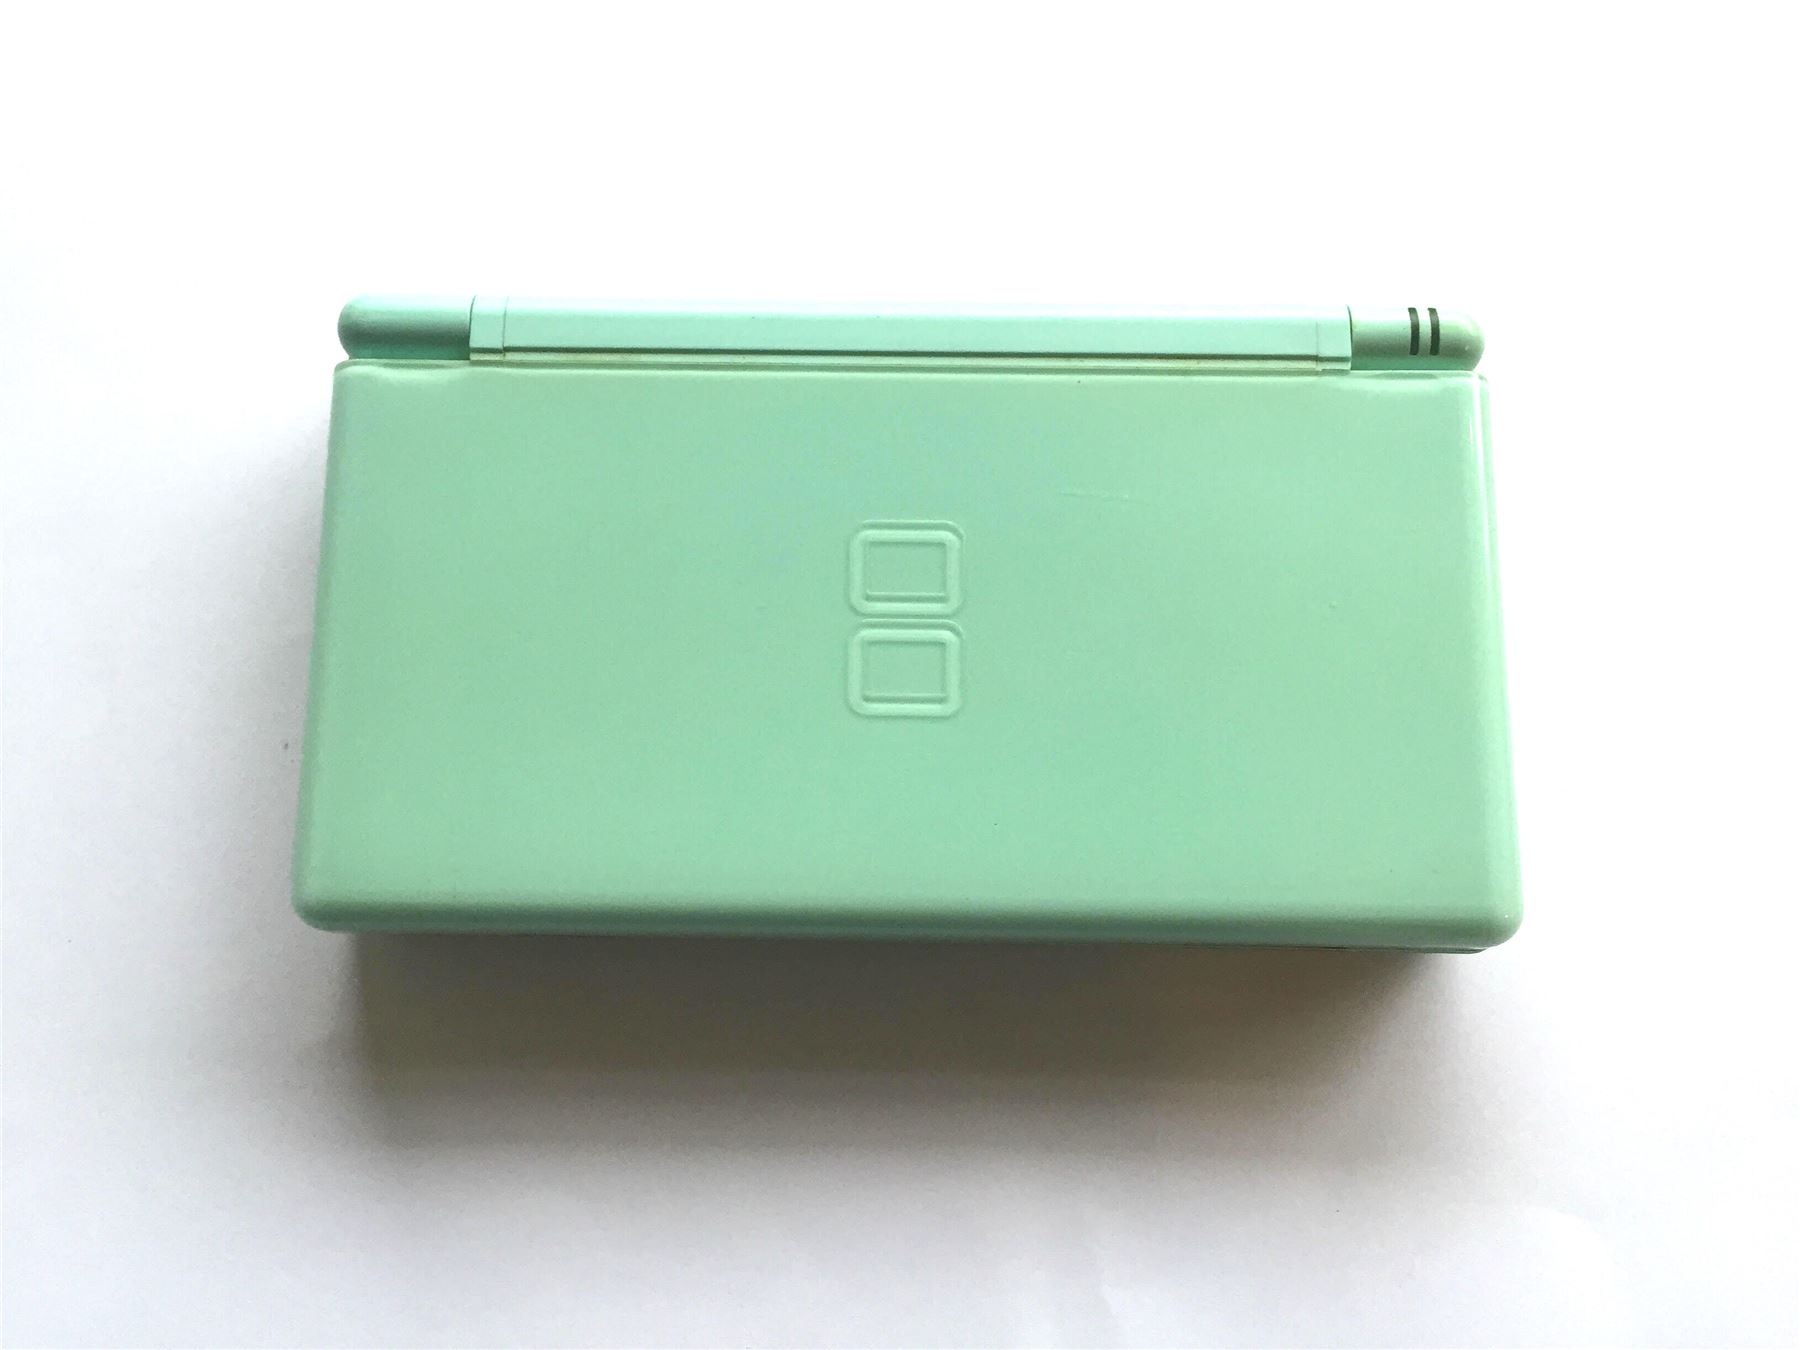 Nintendo-DS-Lite-Console-Handheld-Video-Game-System-NDSL-DS-NDS-DSL-8-Colours thumbnail 42